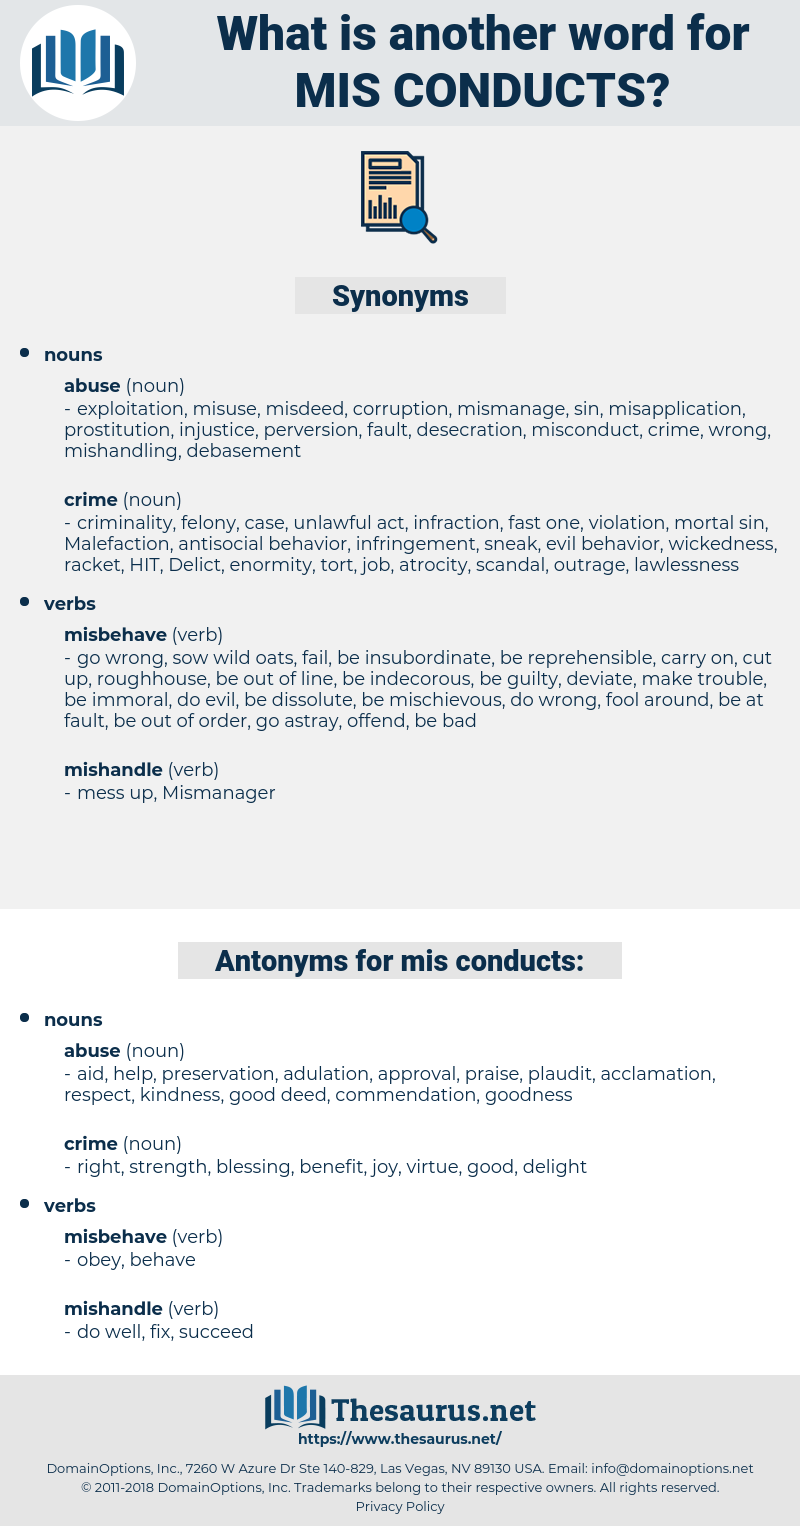 mis conducts, synonym mis conducts, another word for mis conducts, words like mis conducts, thesaurus mis conducts